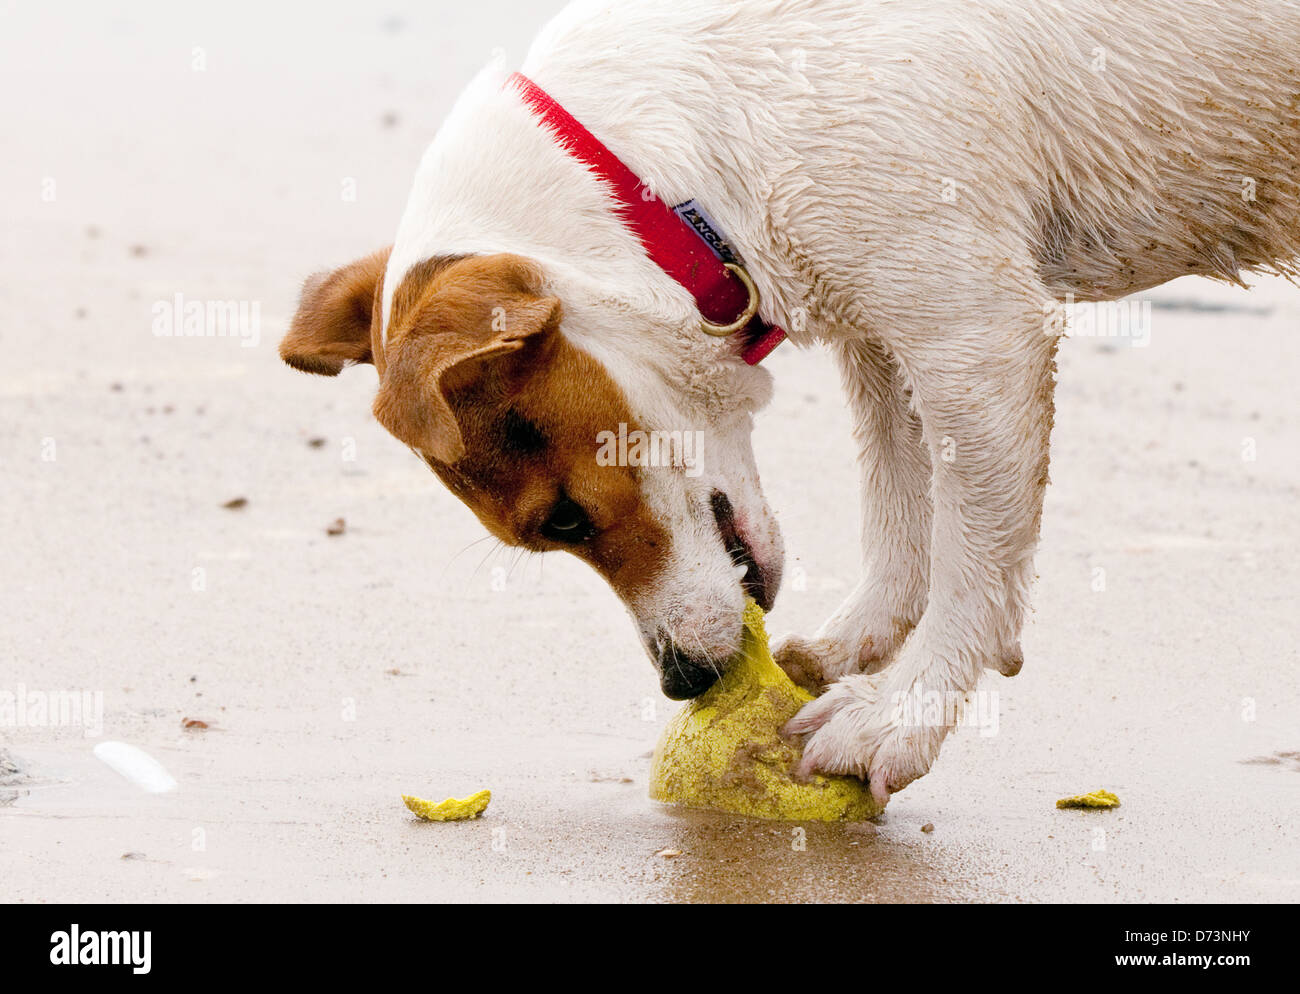 jack-russelll-terrier-dog-playing-with-a-ball-at-the-beach-norfolk-D73NHY.jpg